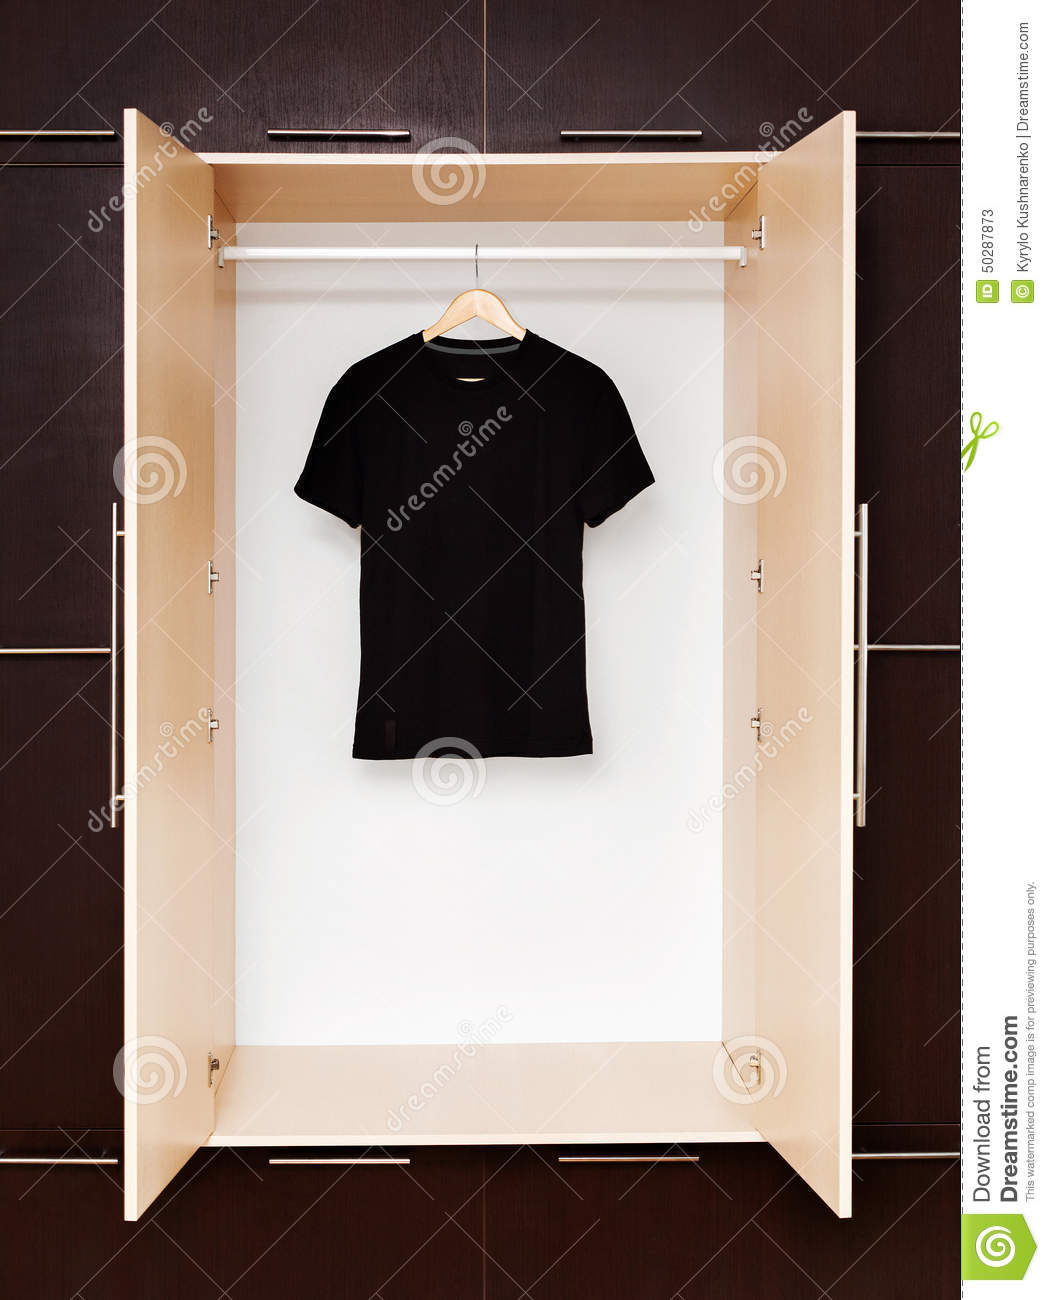 Black T Shirt On Wooden Hangers In A Closet Stock Photo